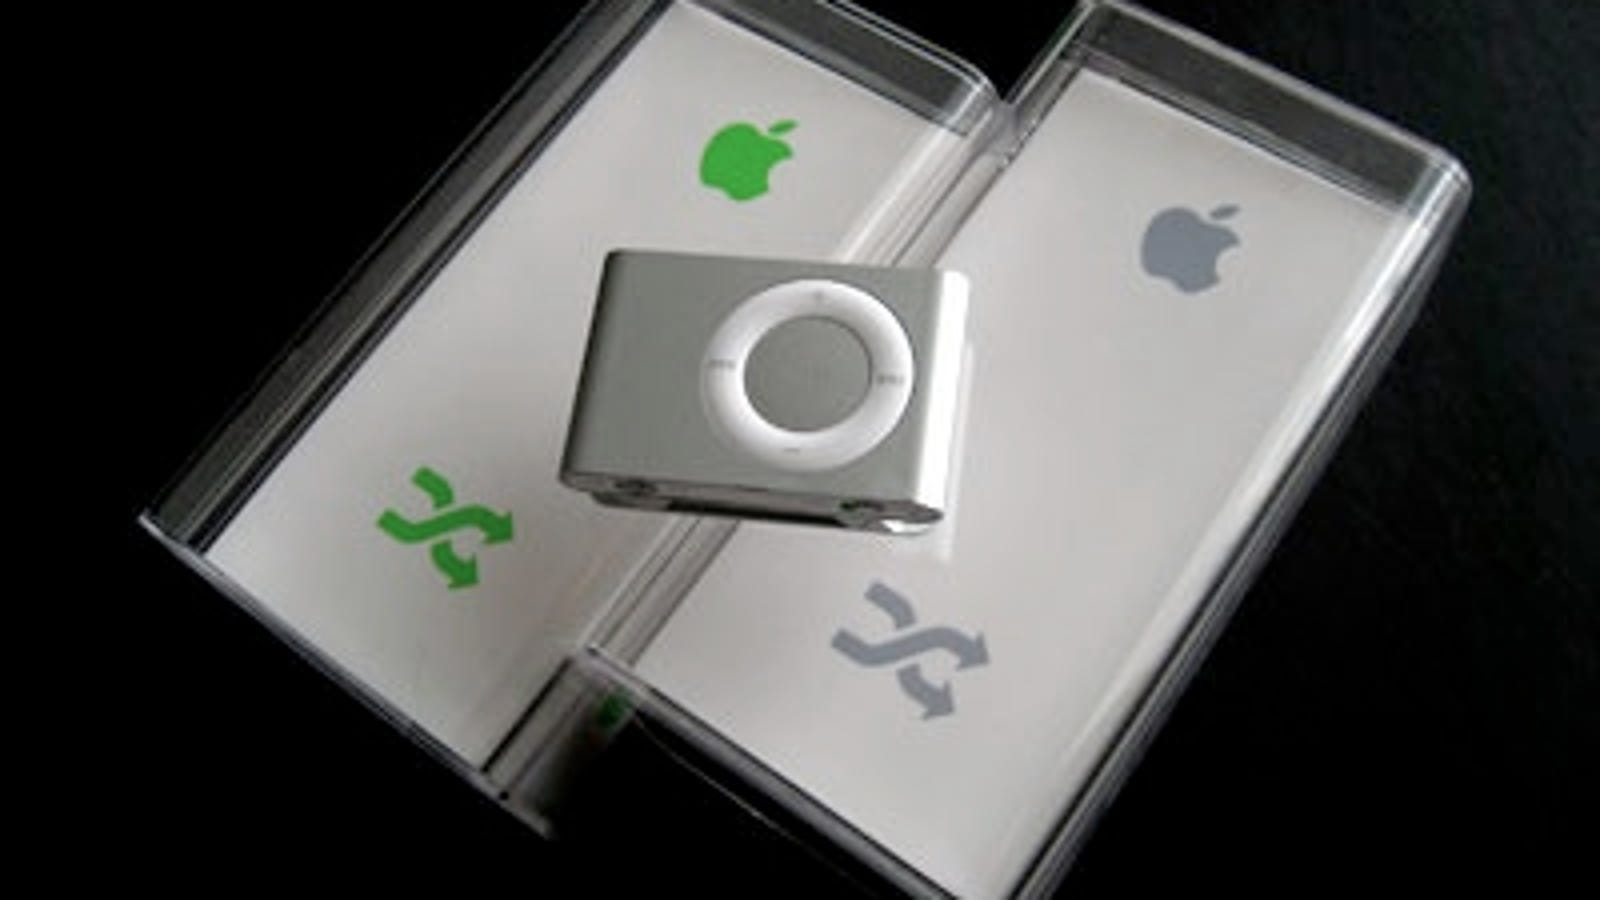 philips earbuds with volume - Get the Latest iPod shuffle Earbuds: Telling the Old Box vs. the New